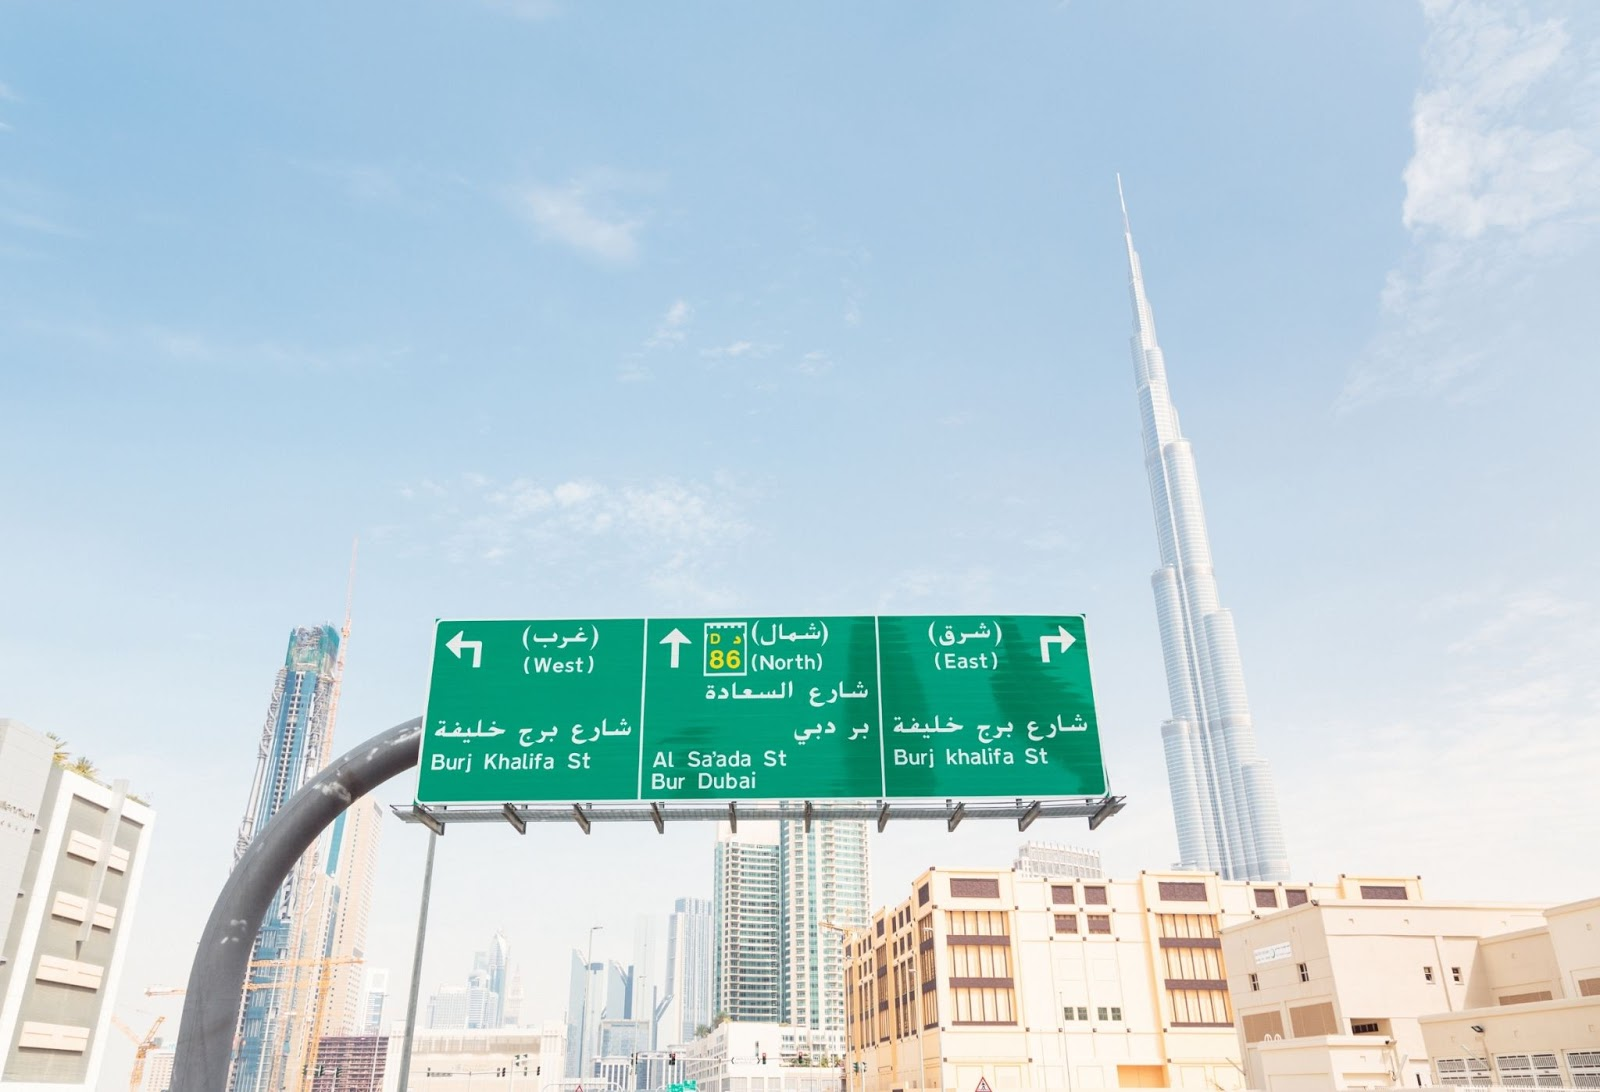 Dubai only recently adopted a standard street address system